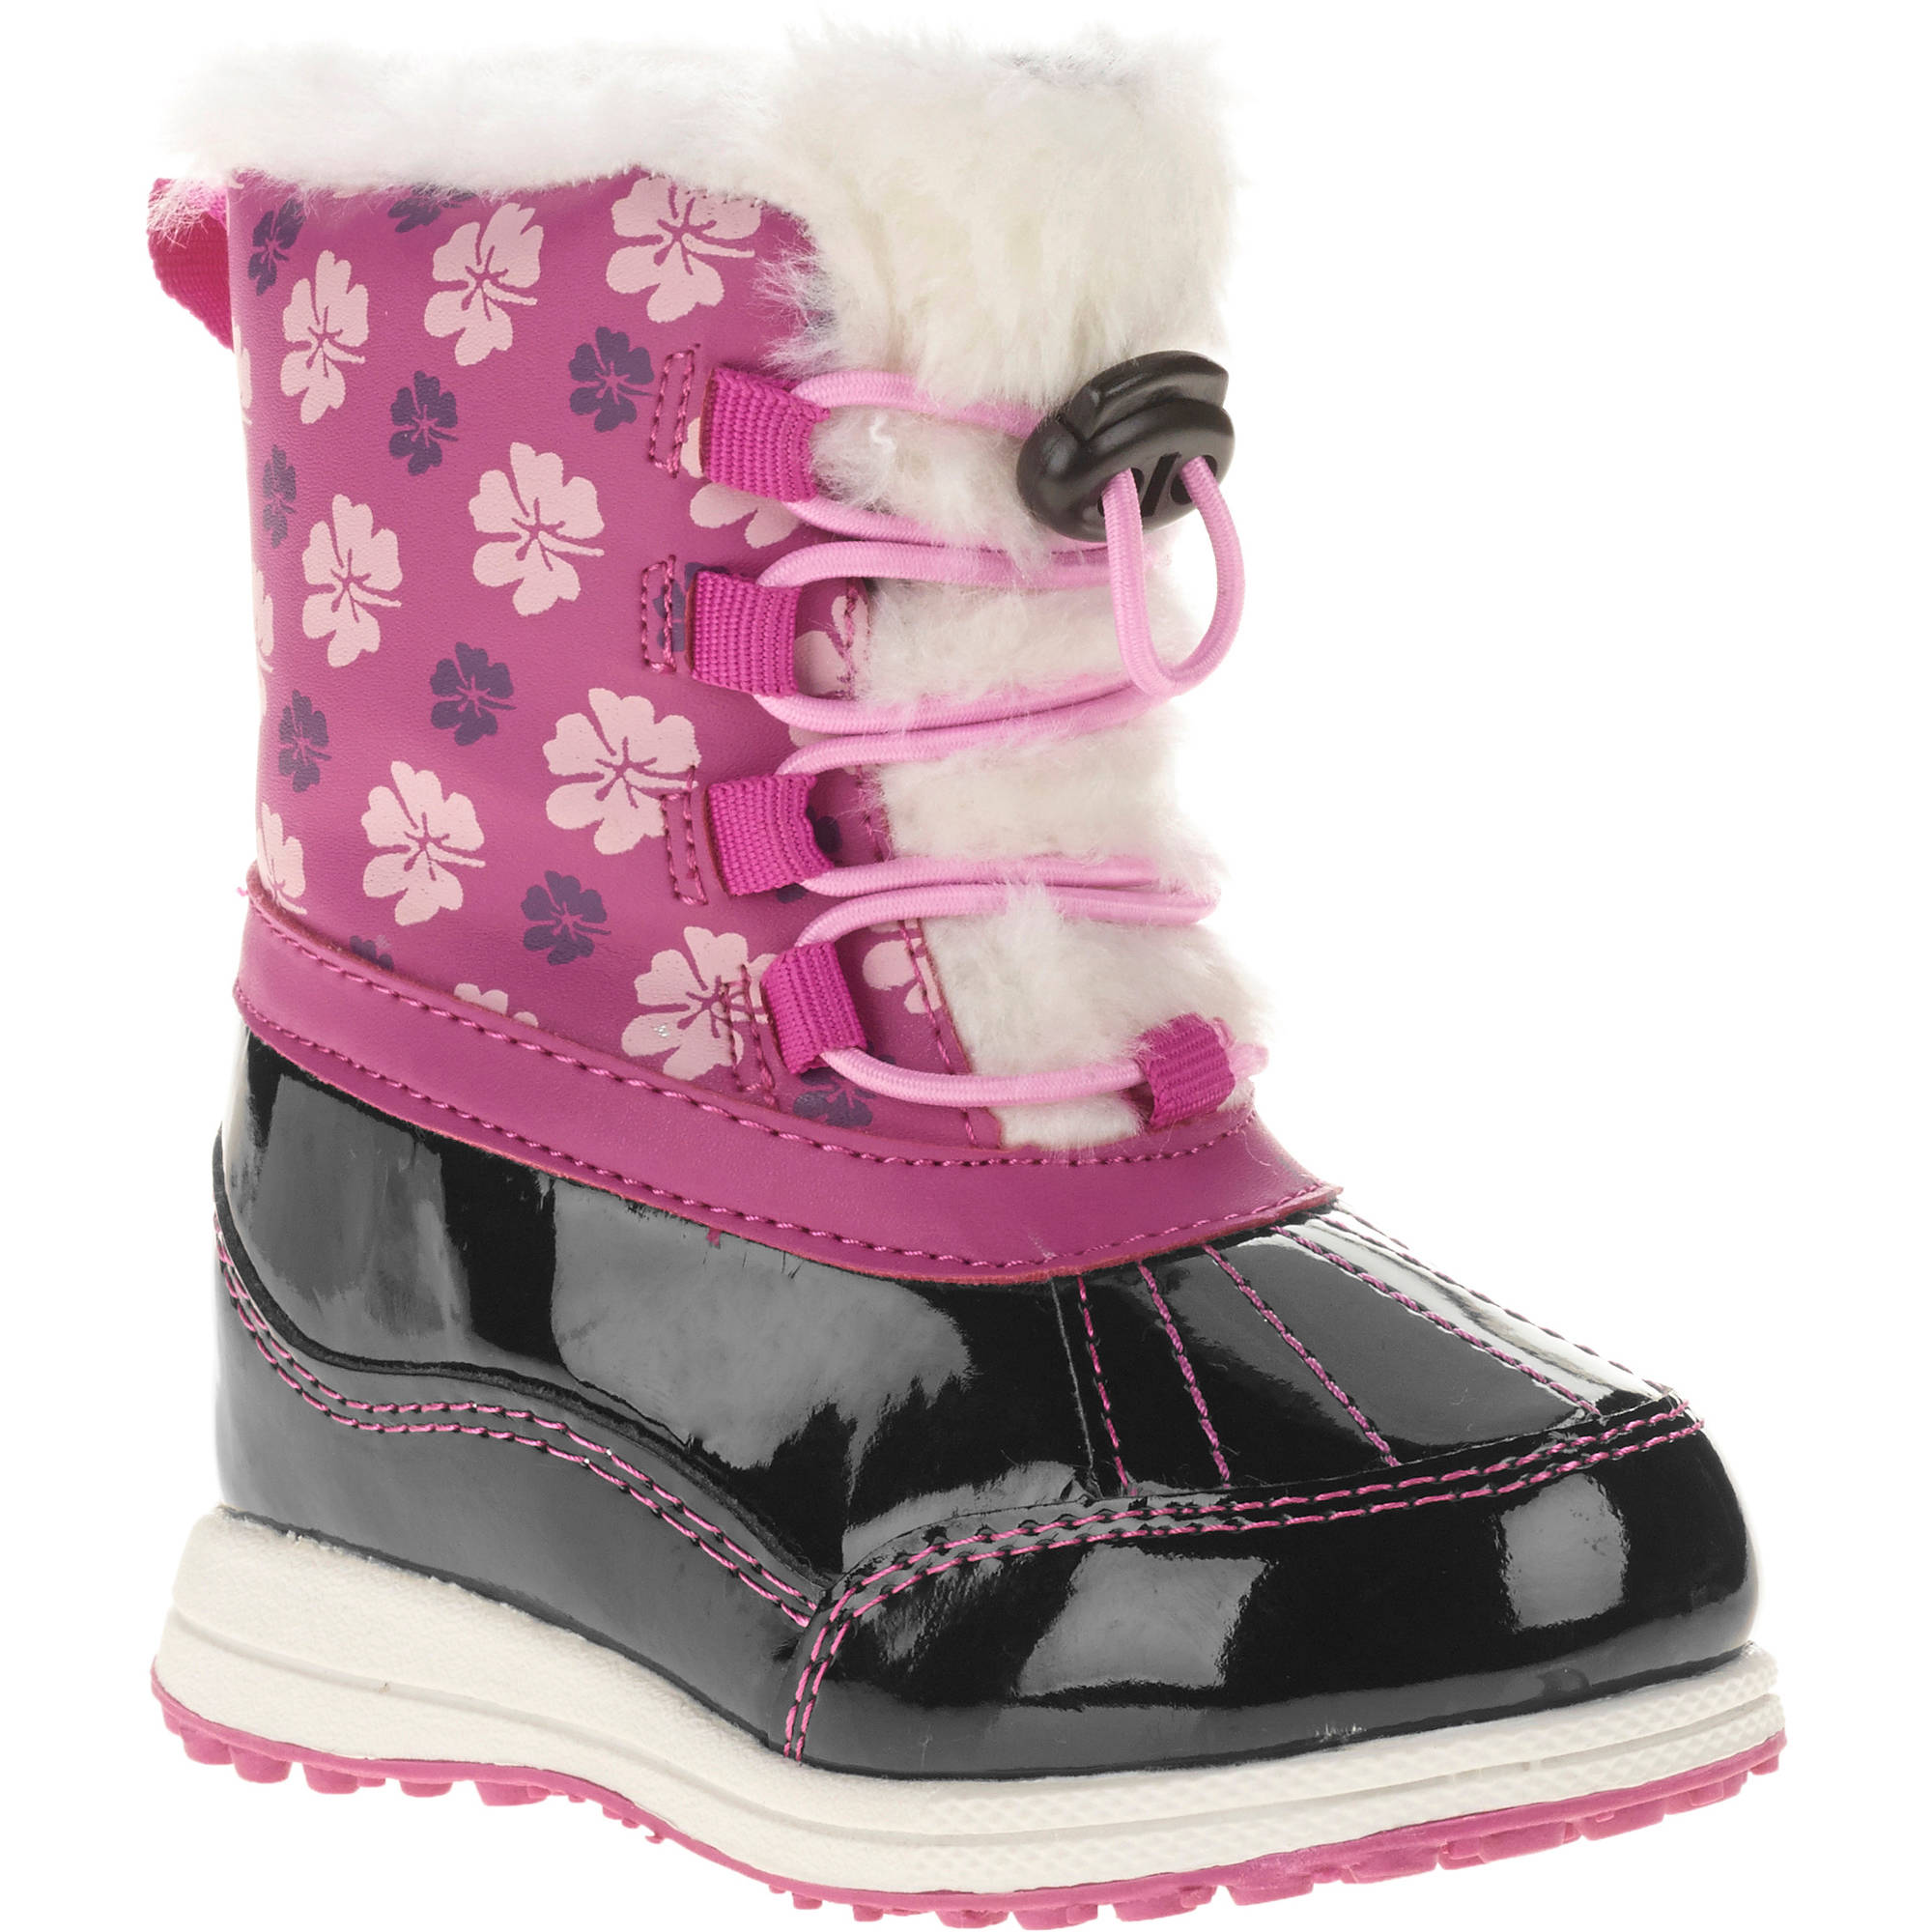 Ozark Trail Toddler Girl's Classic Winter Boot - Walmart.com